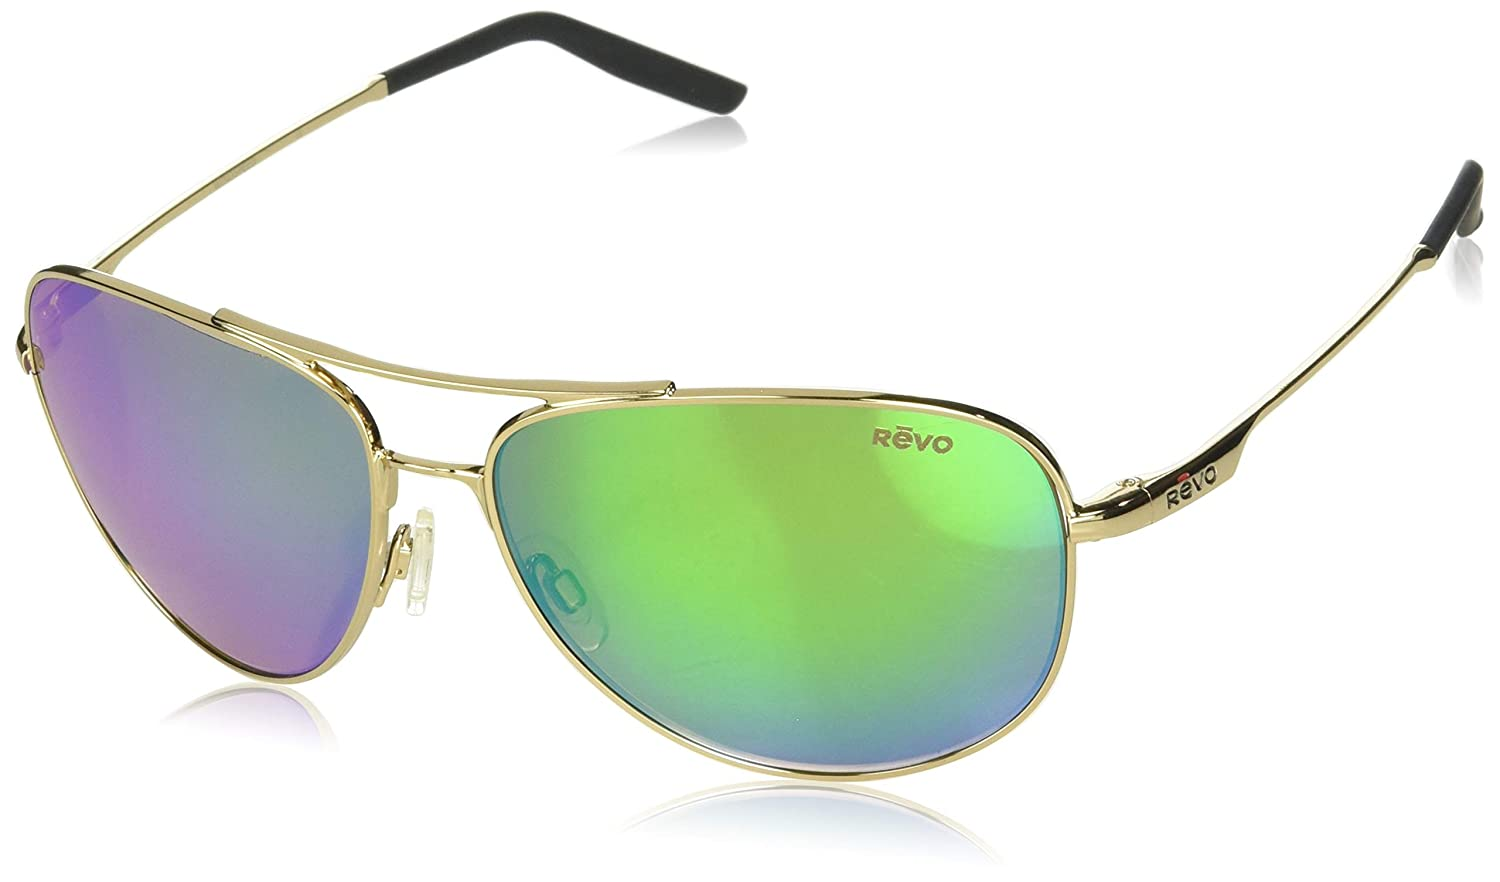 Revo Unisex-Adult Re 3087 Windspeed Polarized Sport Sunglasses RE 3087 400 GN Polarized Aviator Sunglasses, Polished Gold, 61 mm